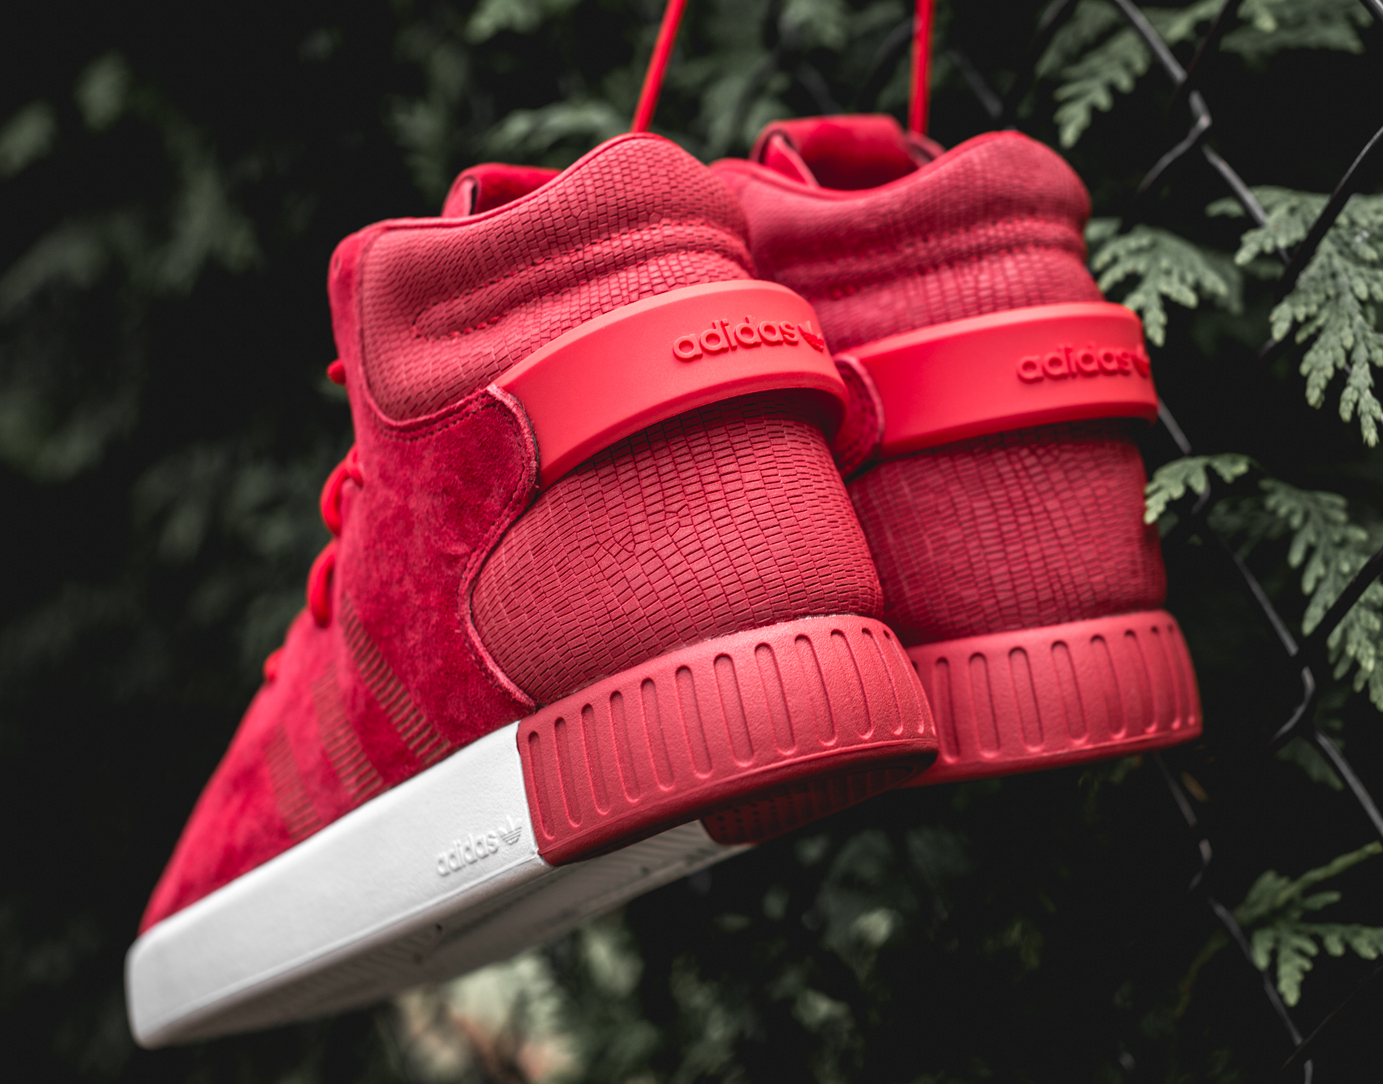 Adidas Tubular Invader Marron